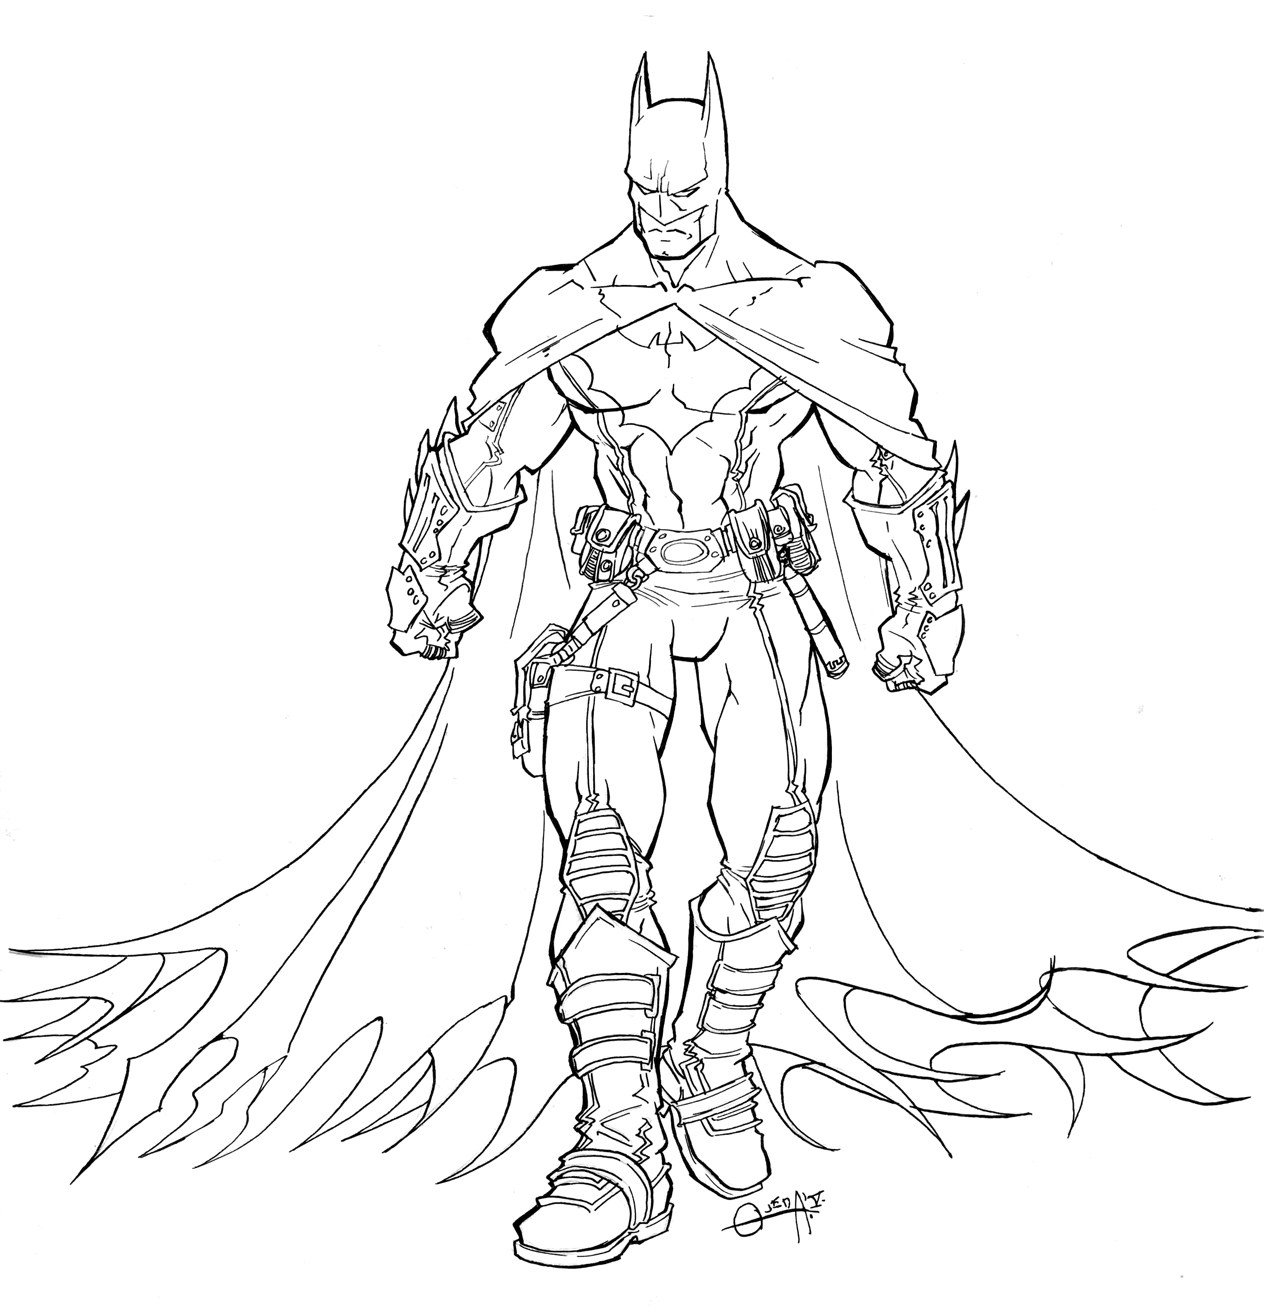 √ Free Printable Batman Coloring Pages For Kids - Free Printable Batman Coloring Pages